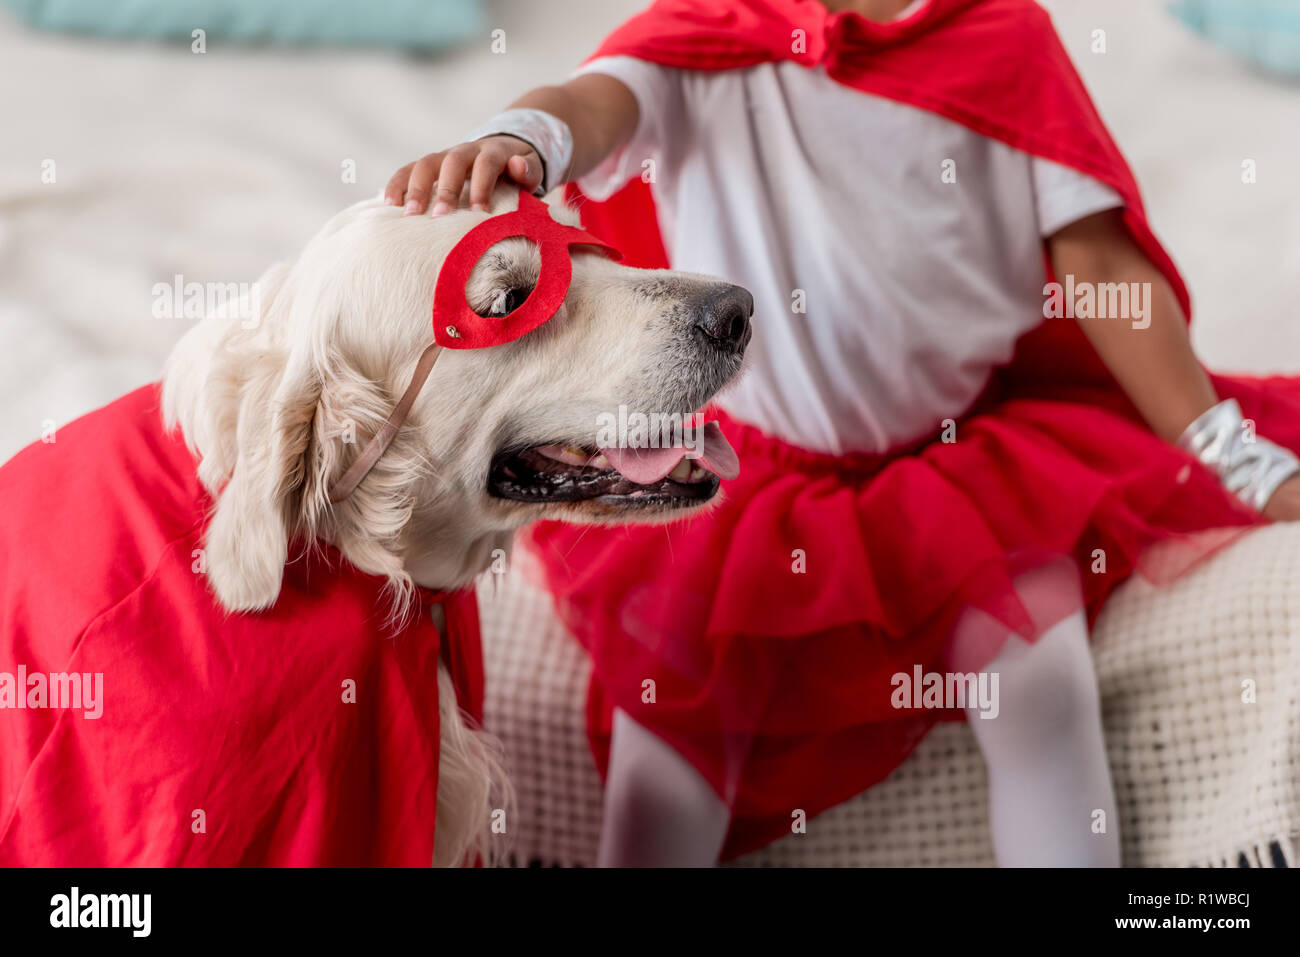 Partial view of hand petting happy golden retriever dog in superhero costume - Stock Image